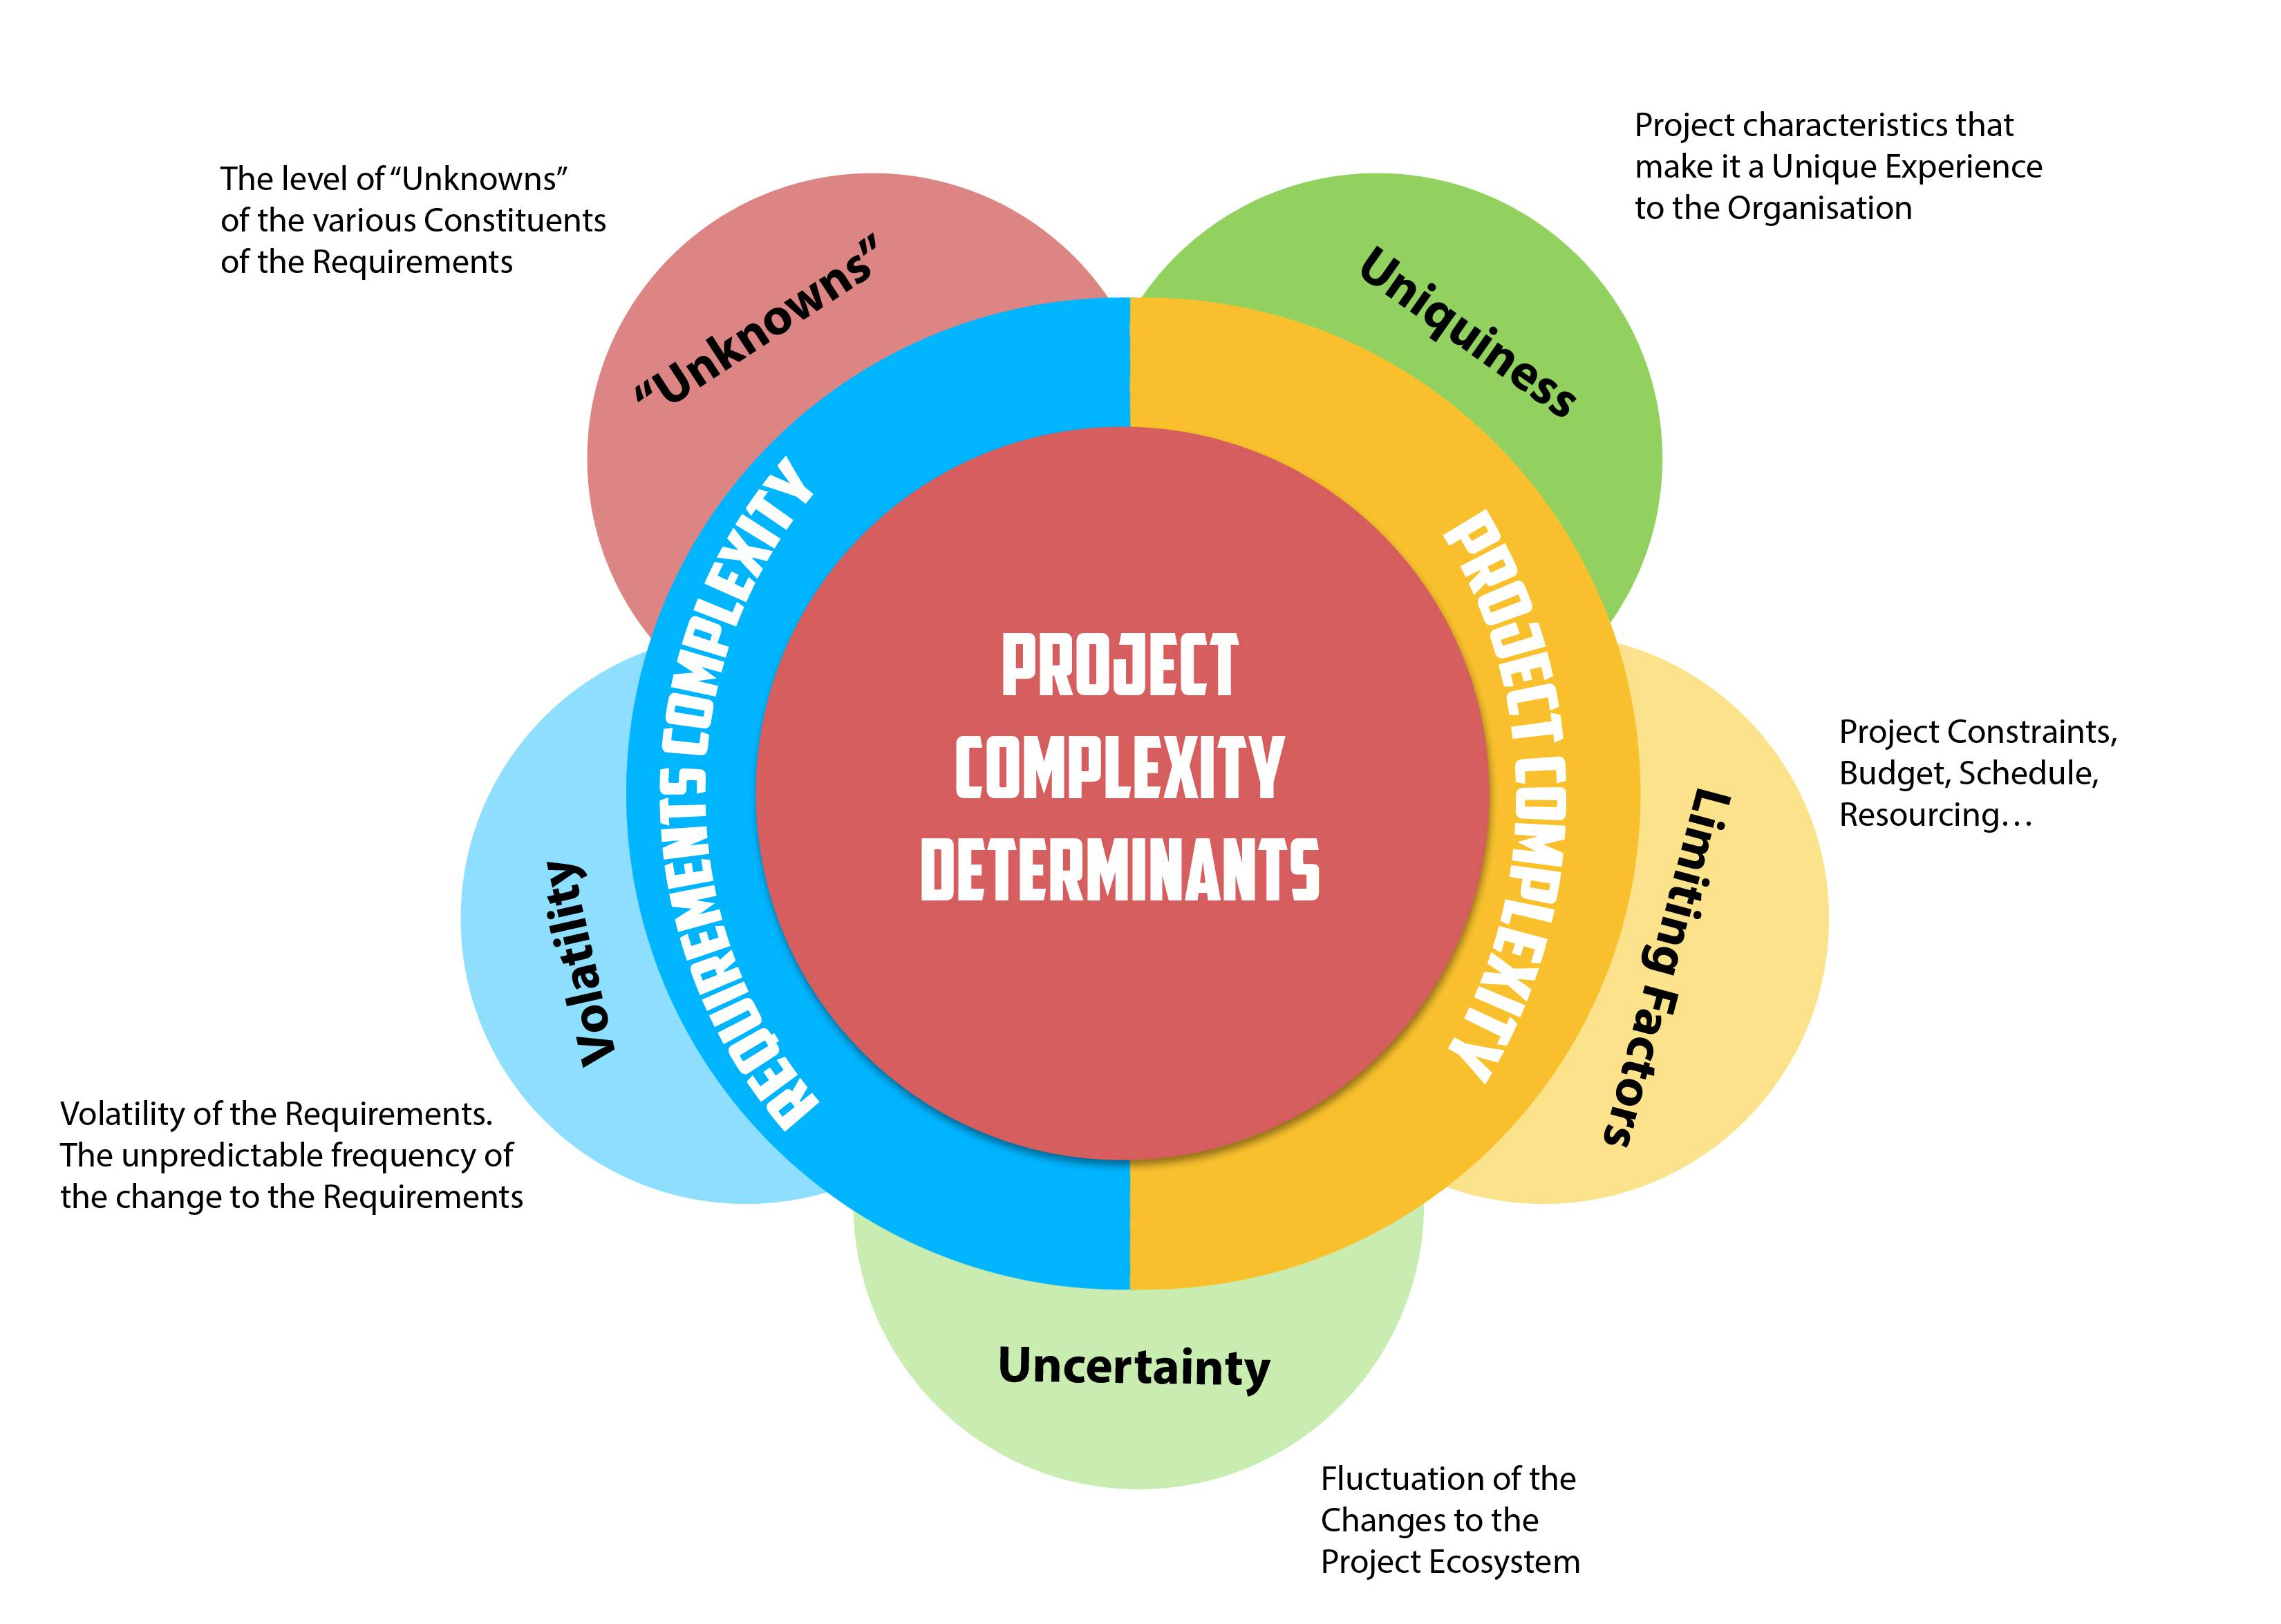 Project Complexity Determinants